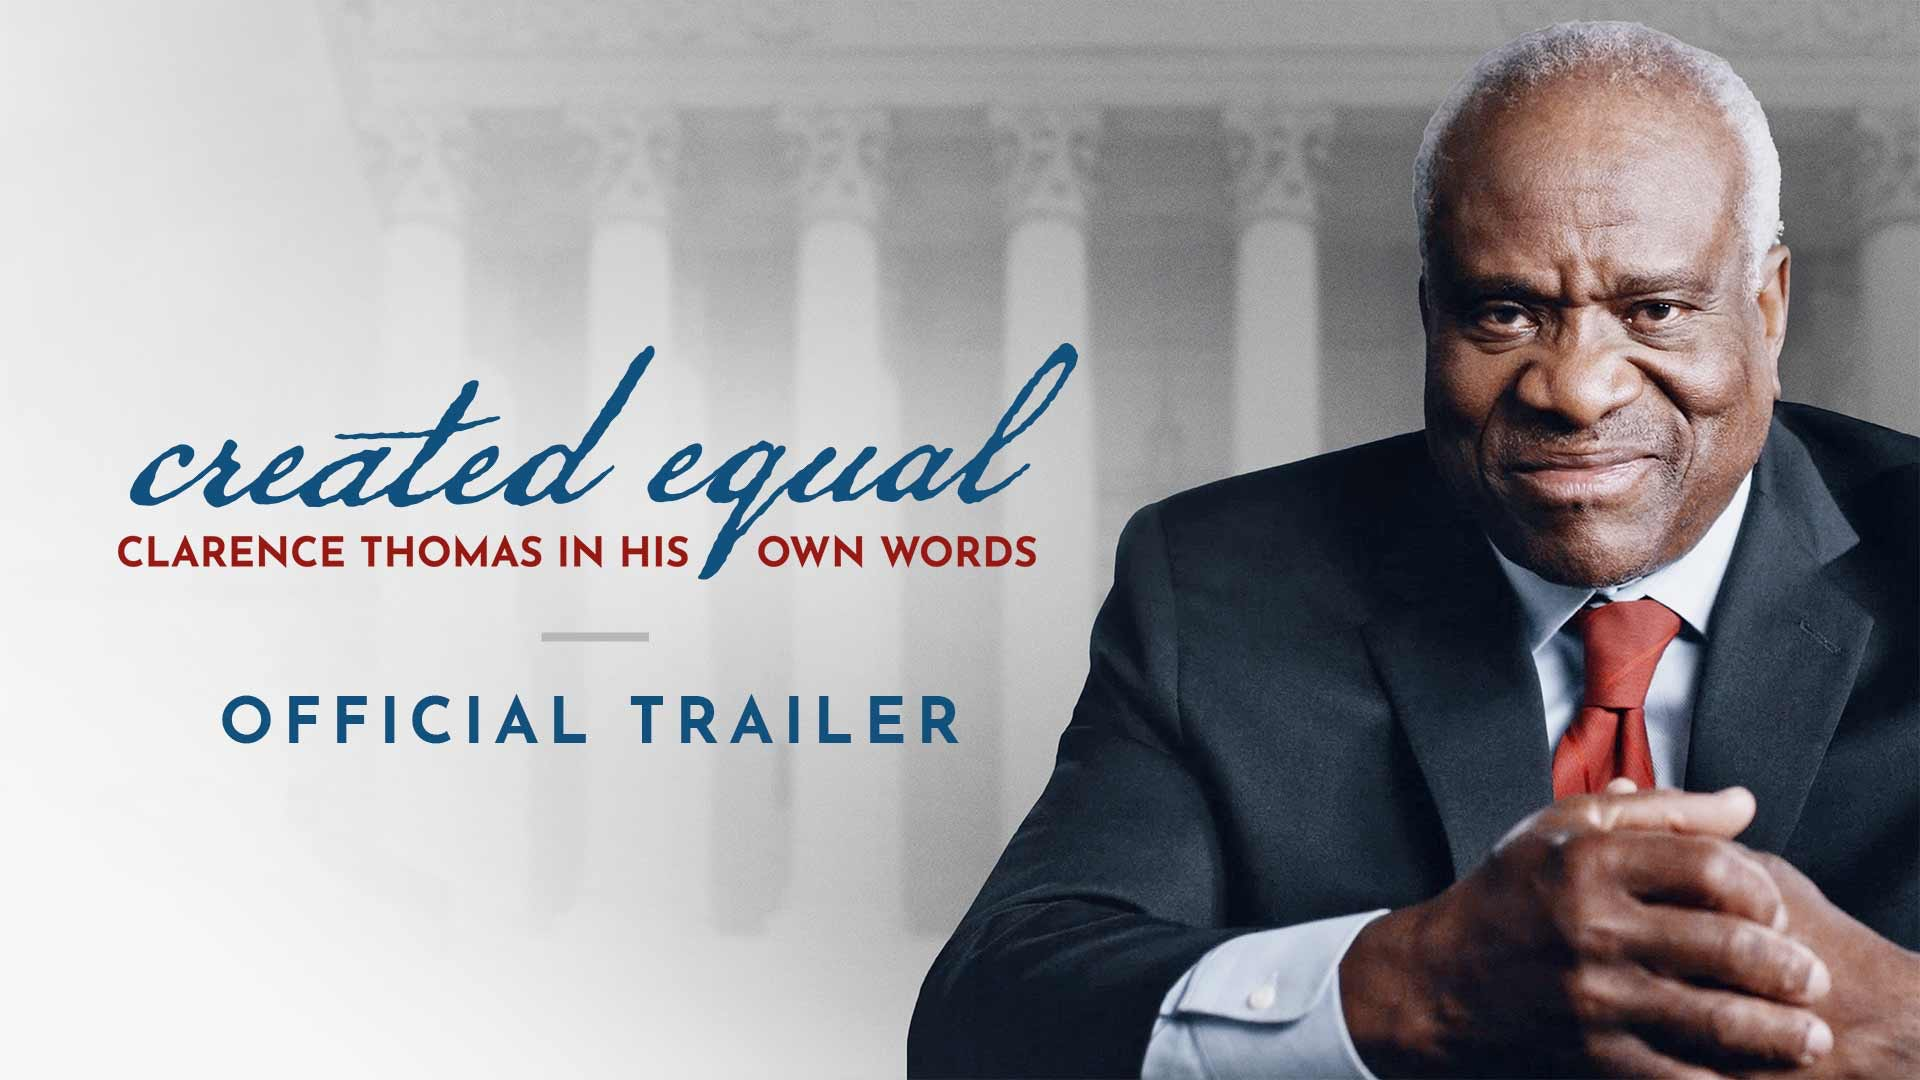 Created Equal: Clarence Thomas in His Own Words | Official Trailer